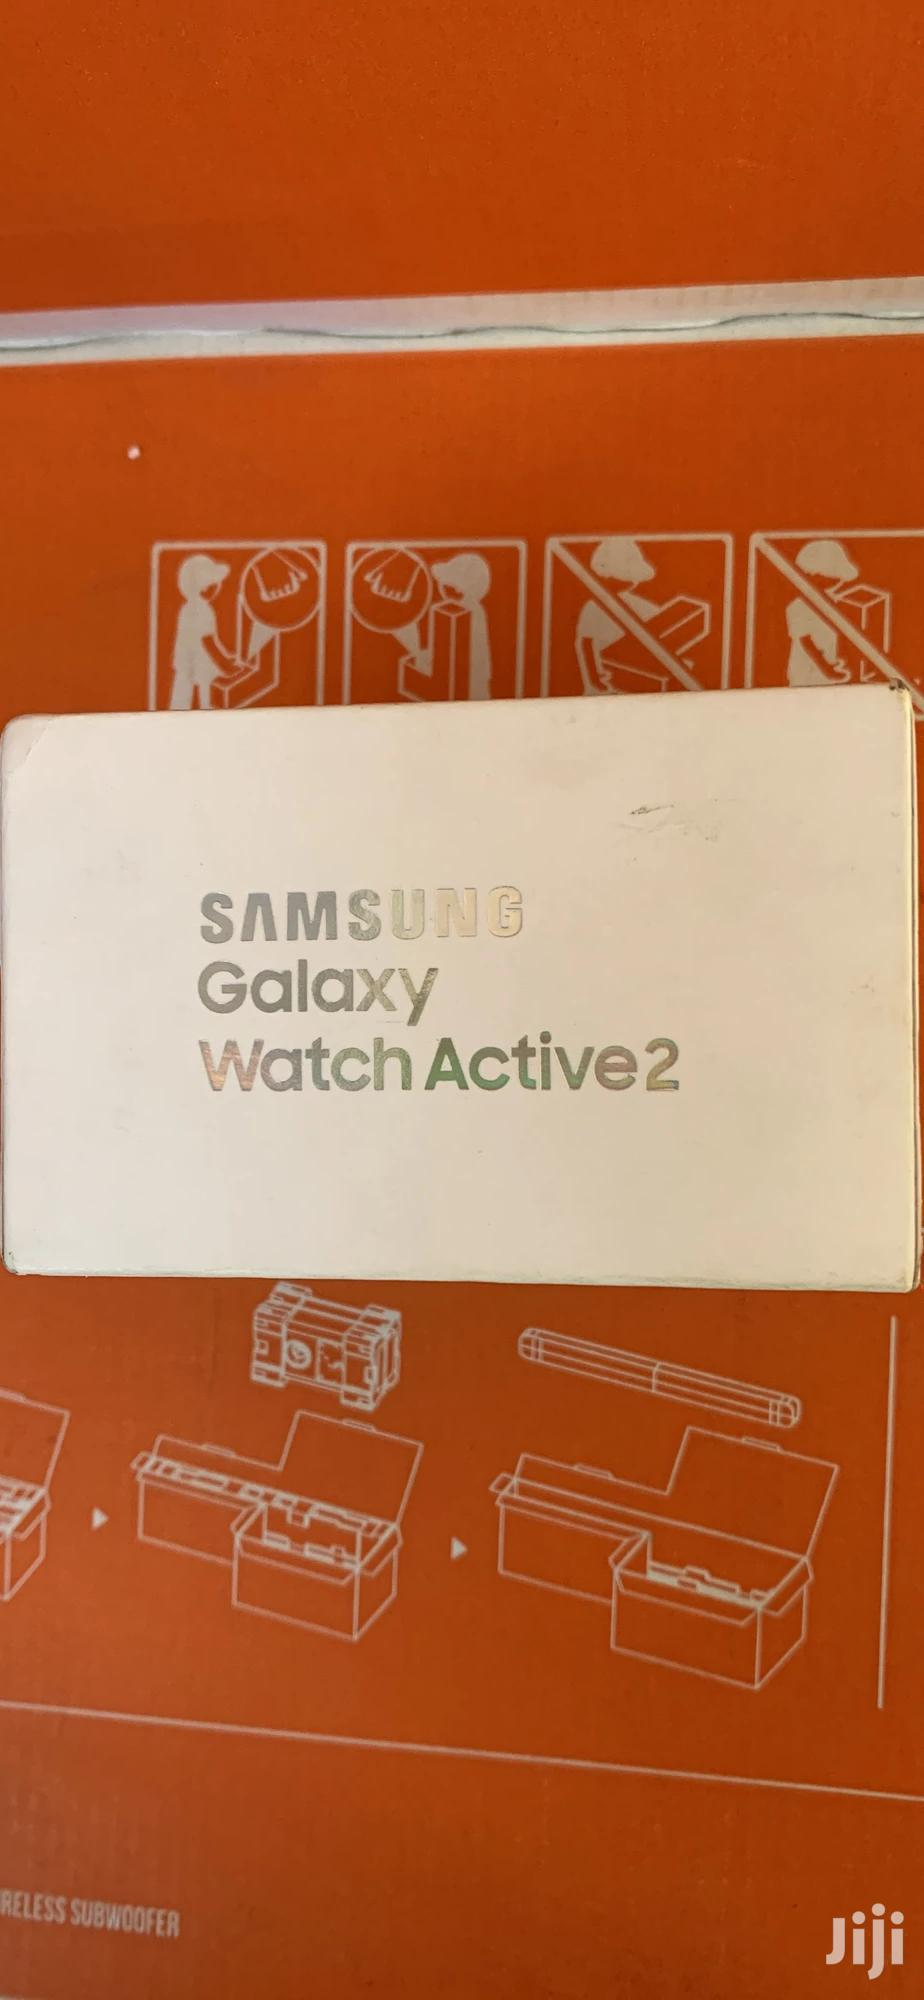 Samsung Active 2 Watch | Smart Watches & Trackers for sale in Kampala, Central Region, Uganda